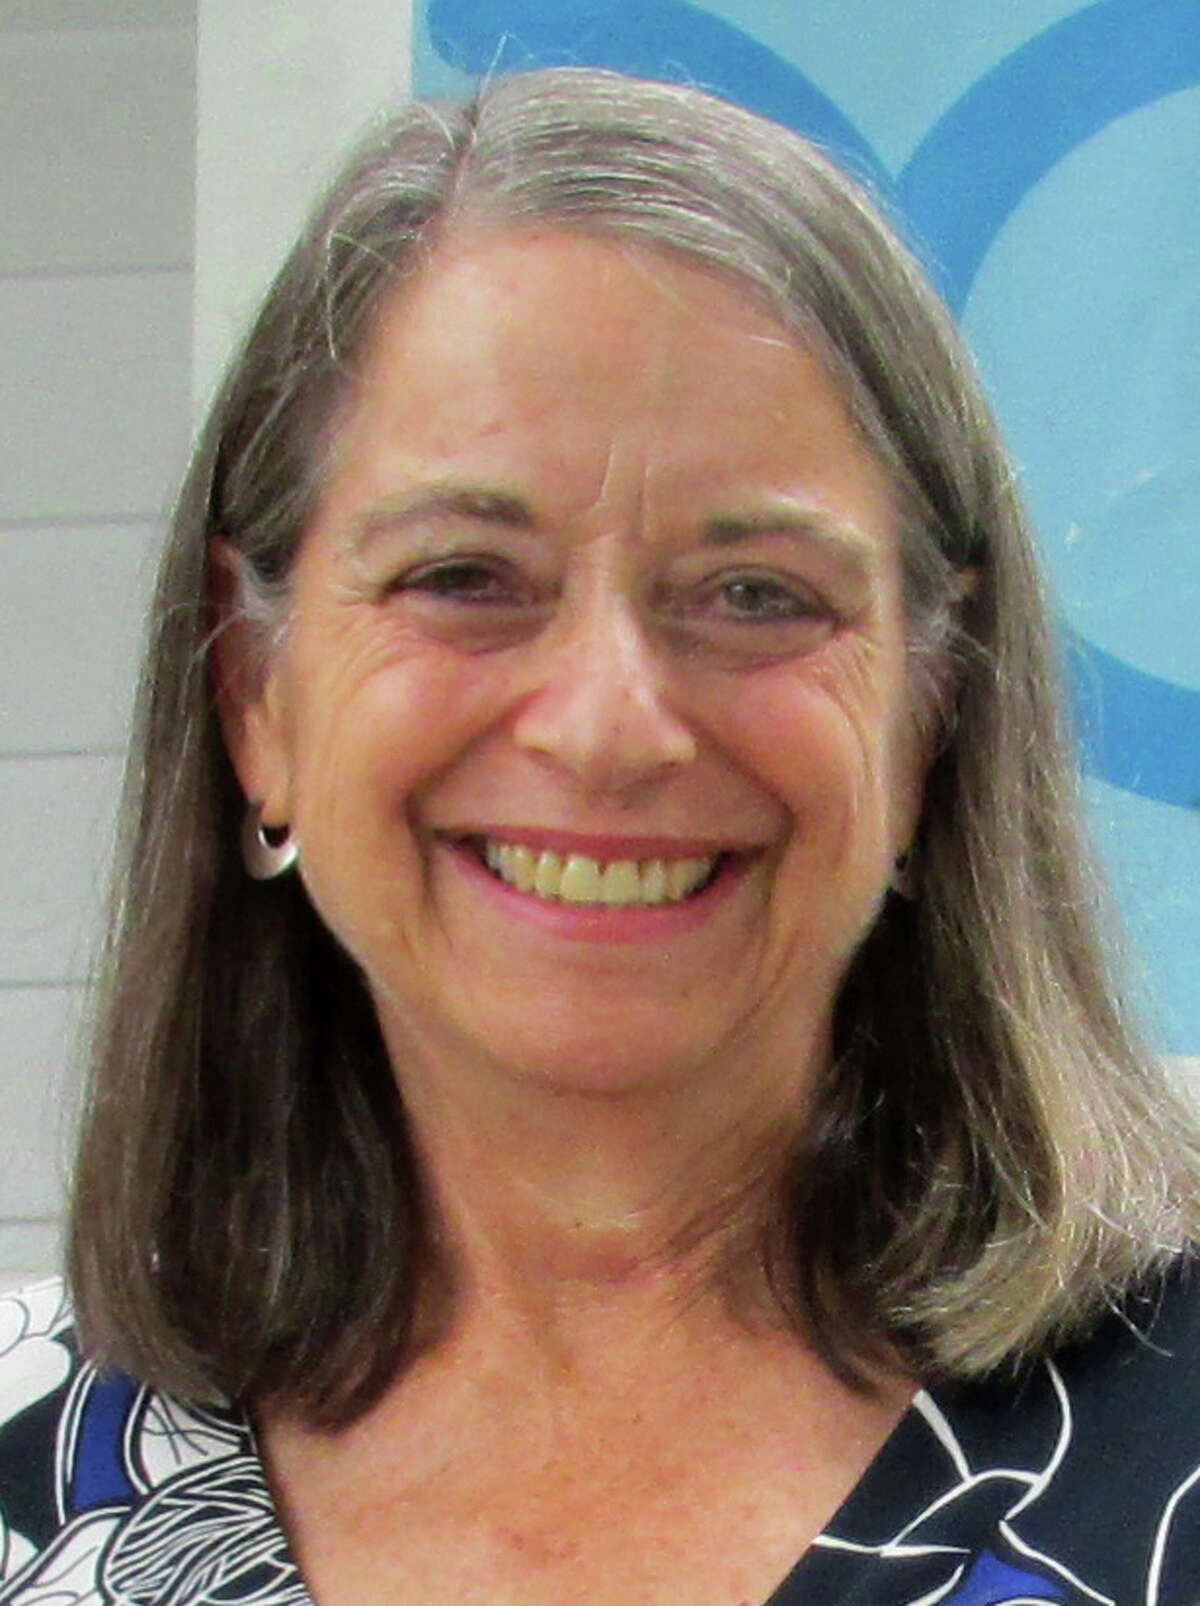 Sherry Perlstein, president and CEO of the Child Guidance Center of Southern Connecticut